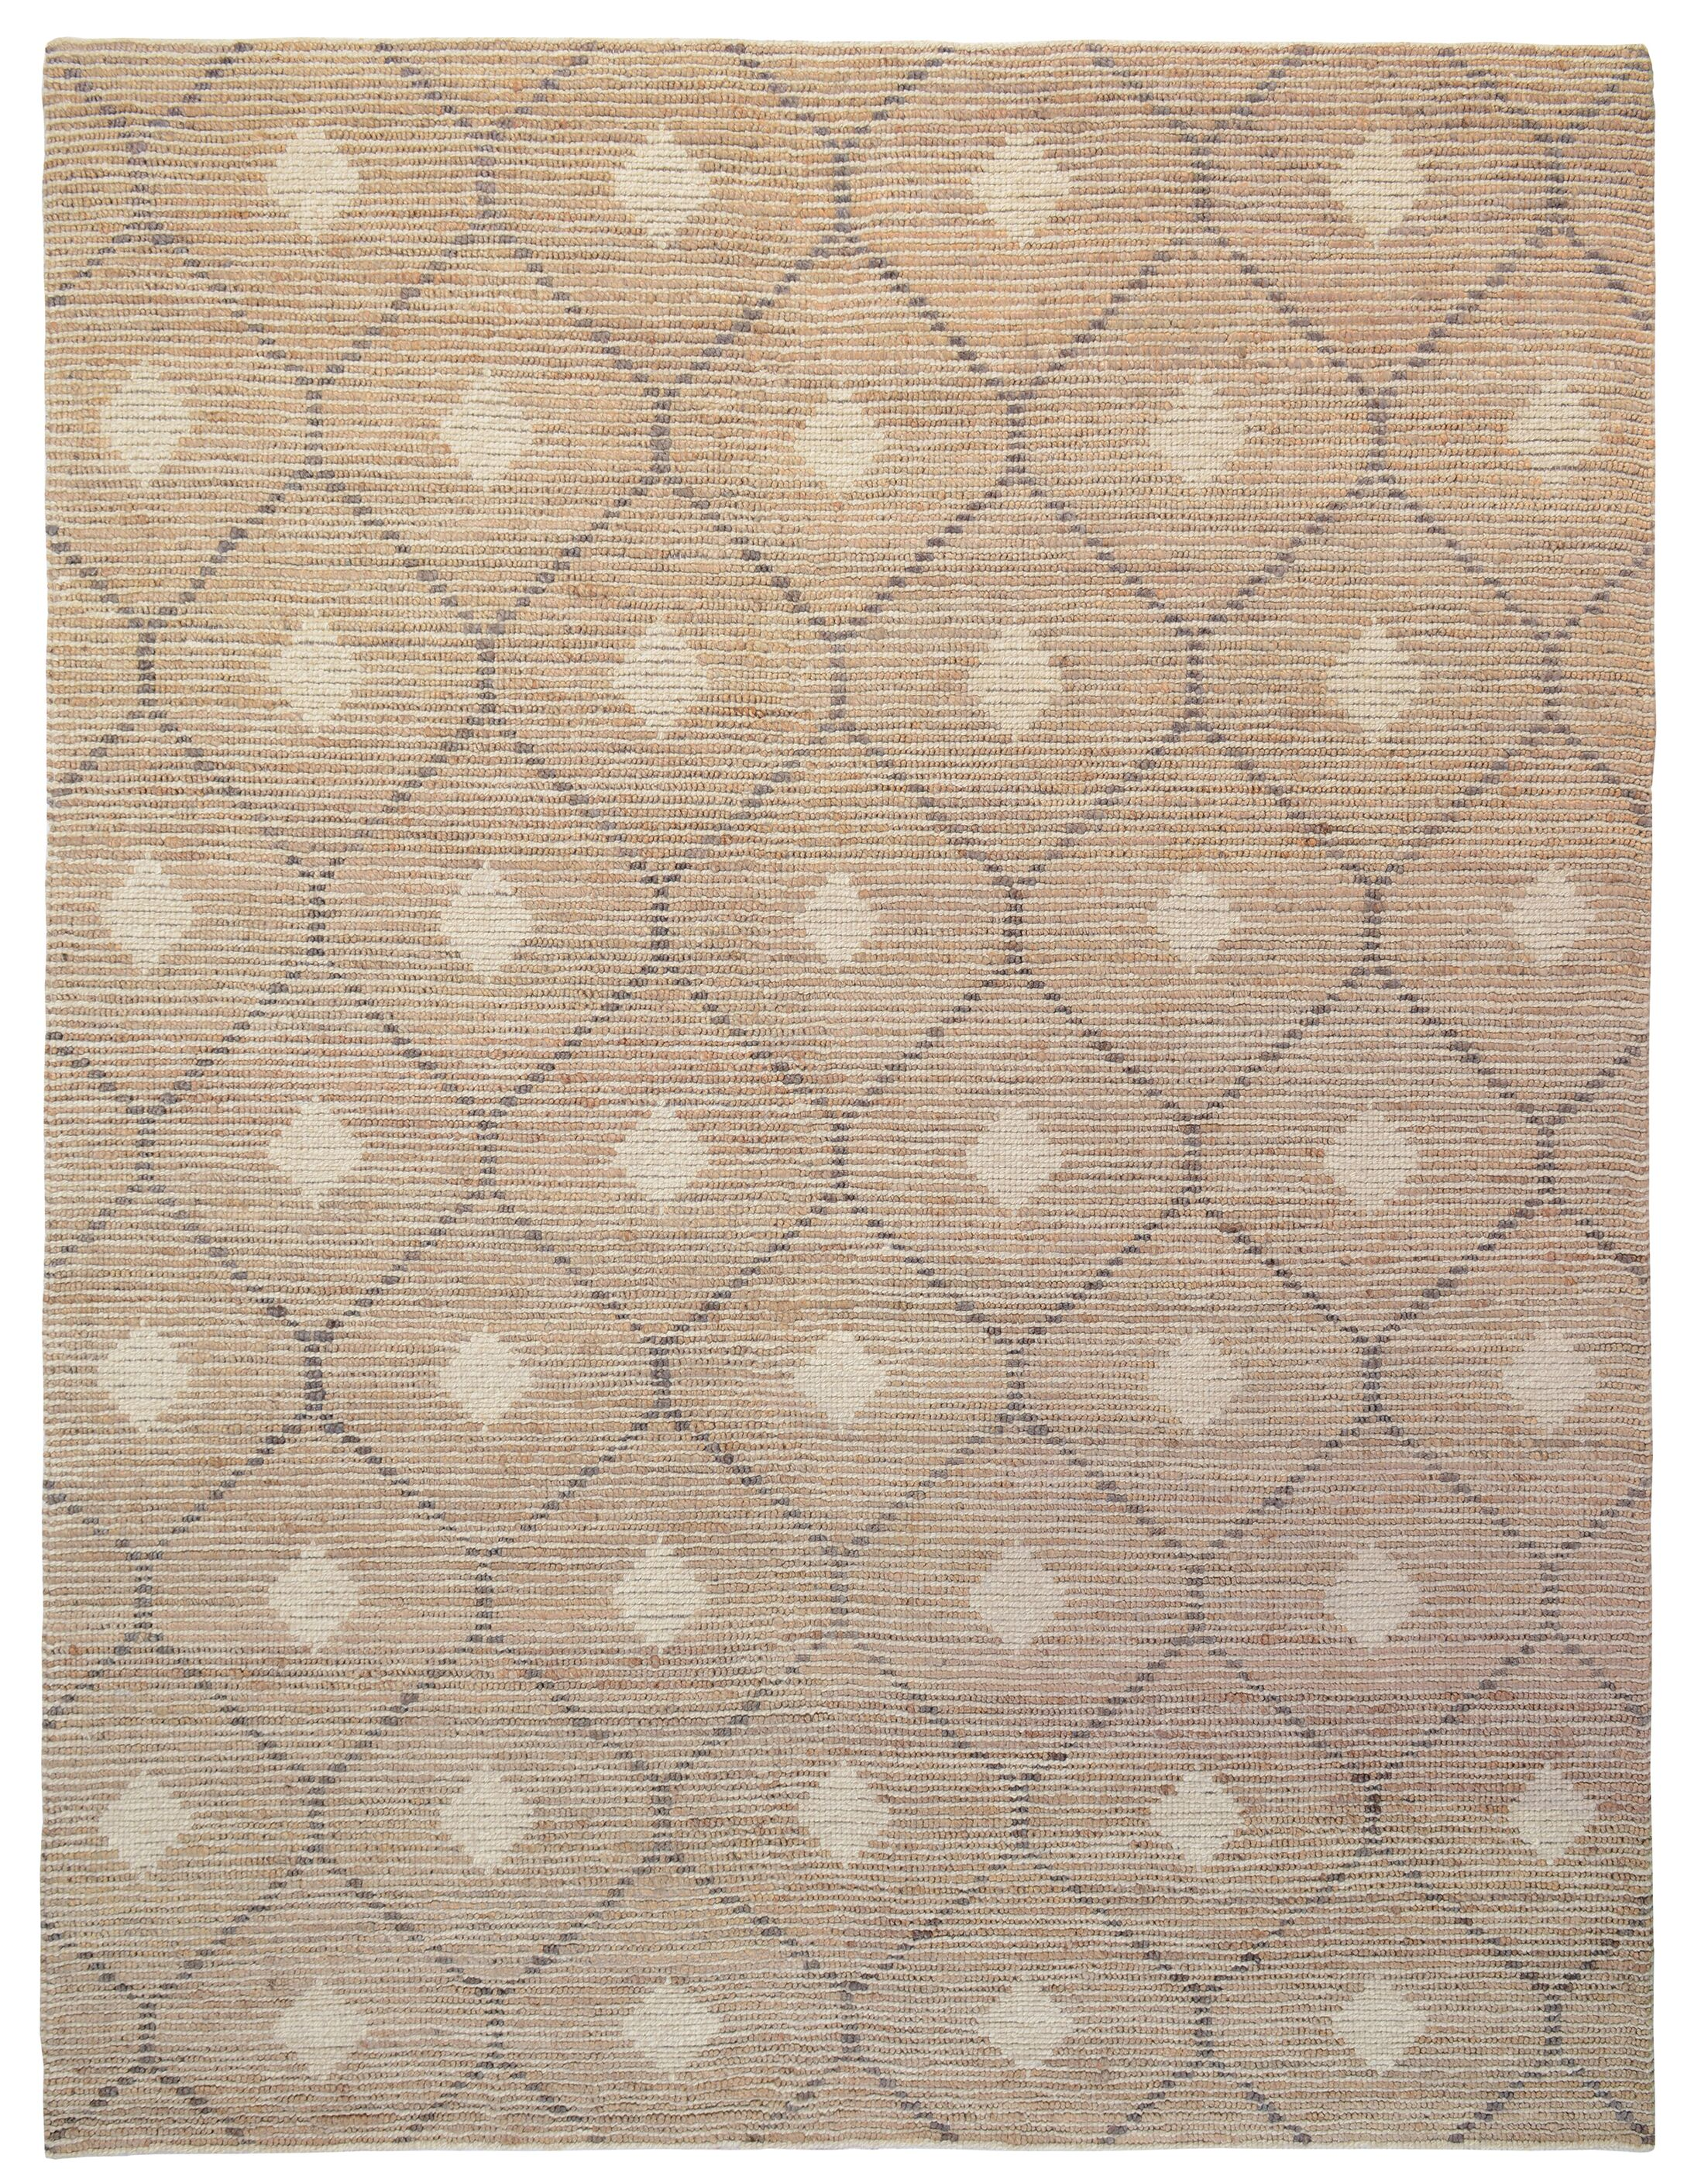 Veenendaal Hand-Woven Brown Area Rug Rug Size: 5' x 8'